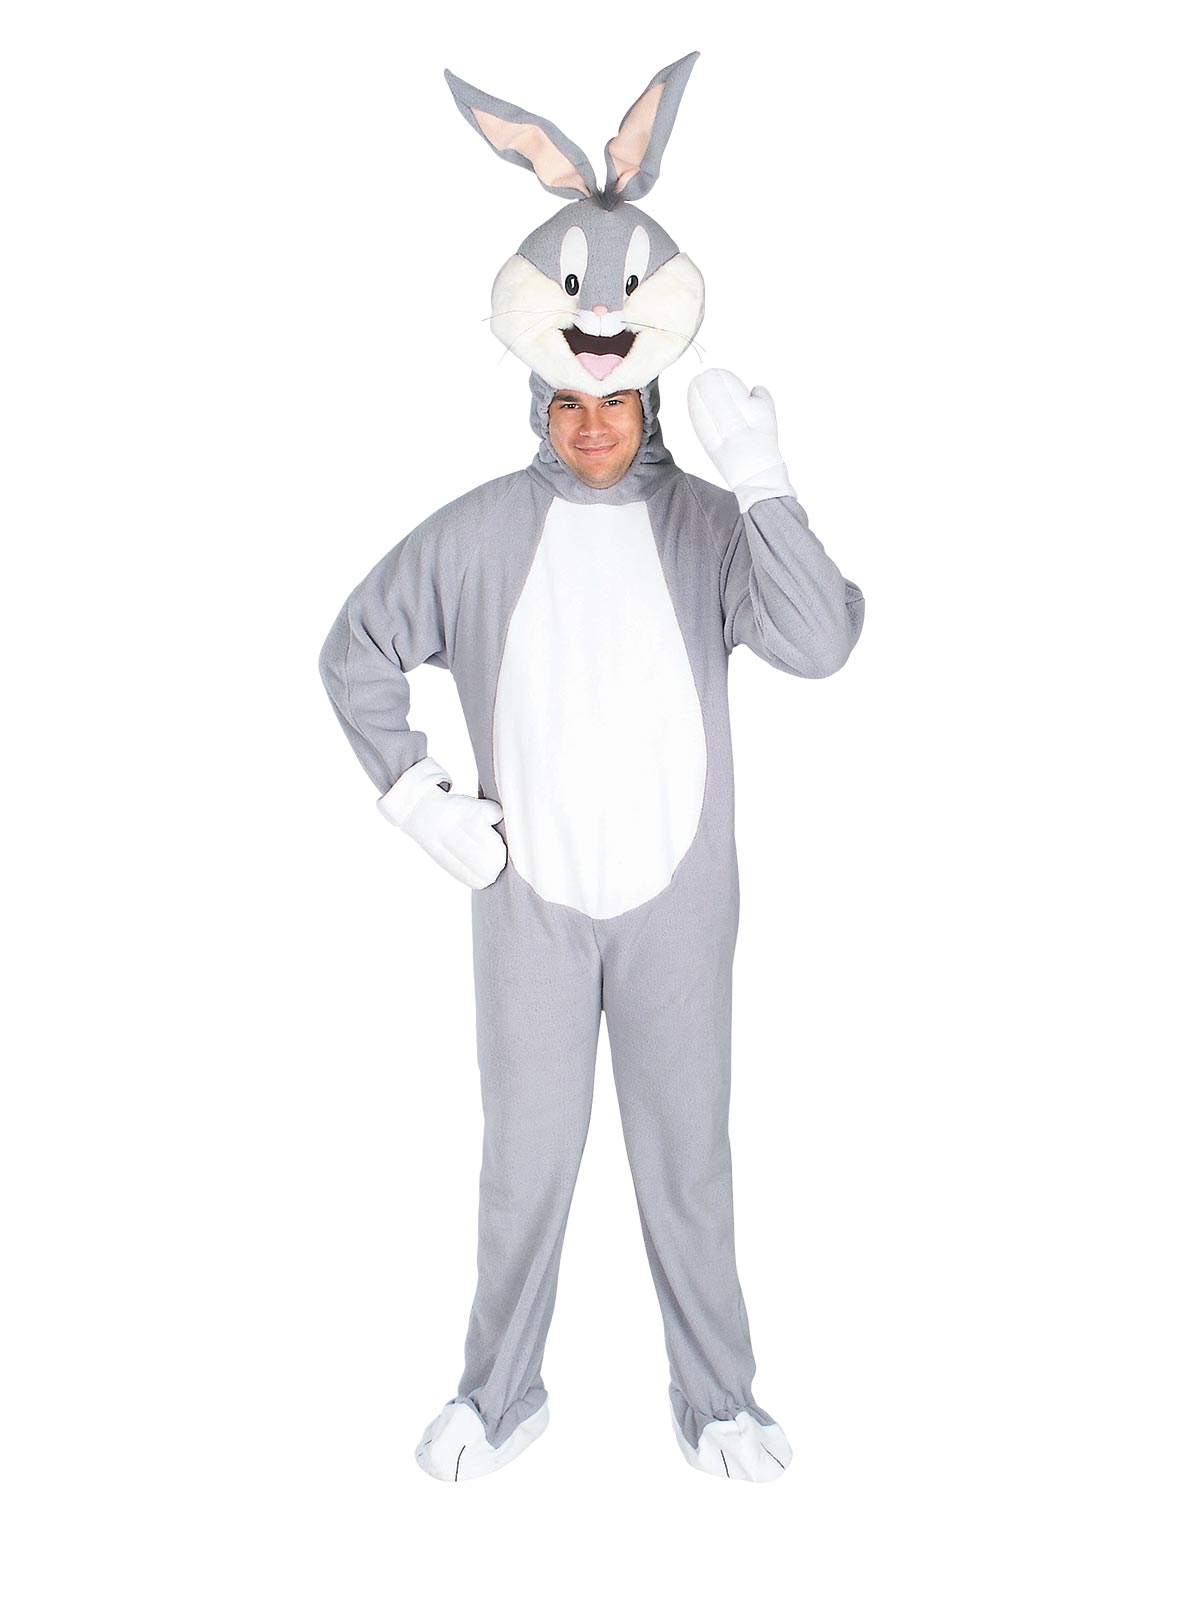 Bugs Bunny Costume - Buy Online Only